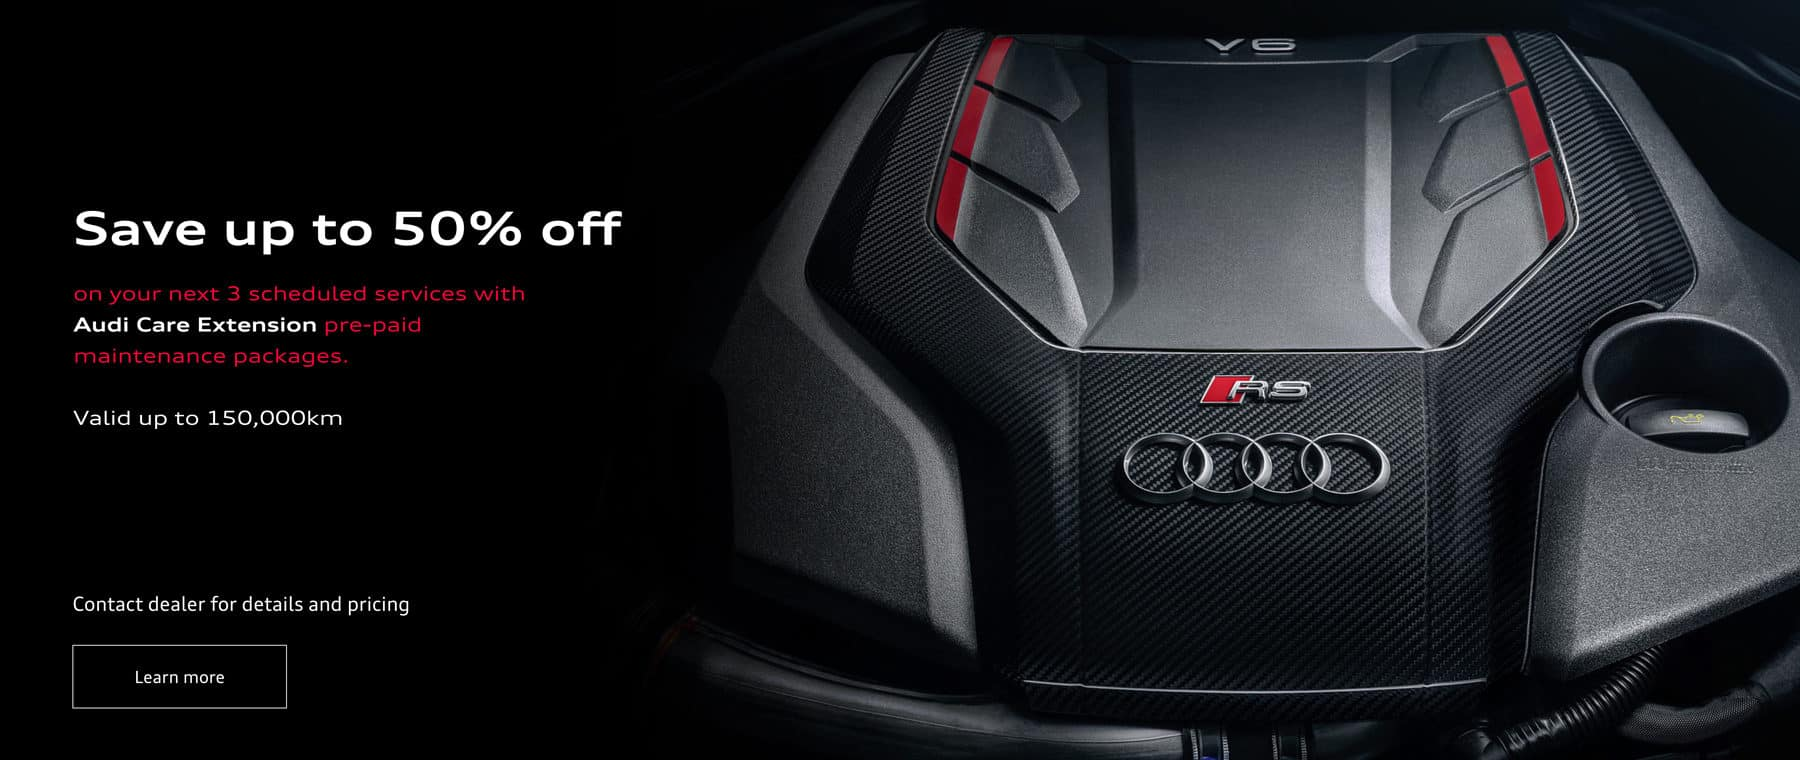 audi_care_extension_OCT_2021_web_banner_1800x760